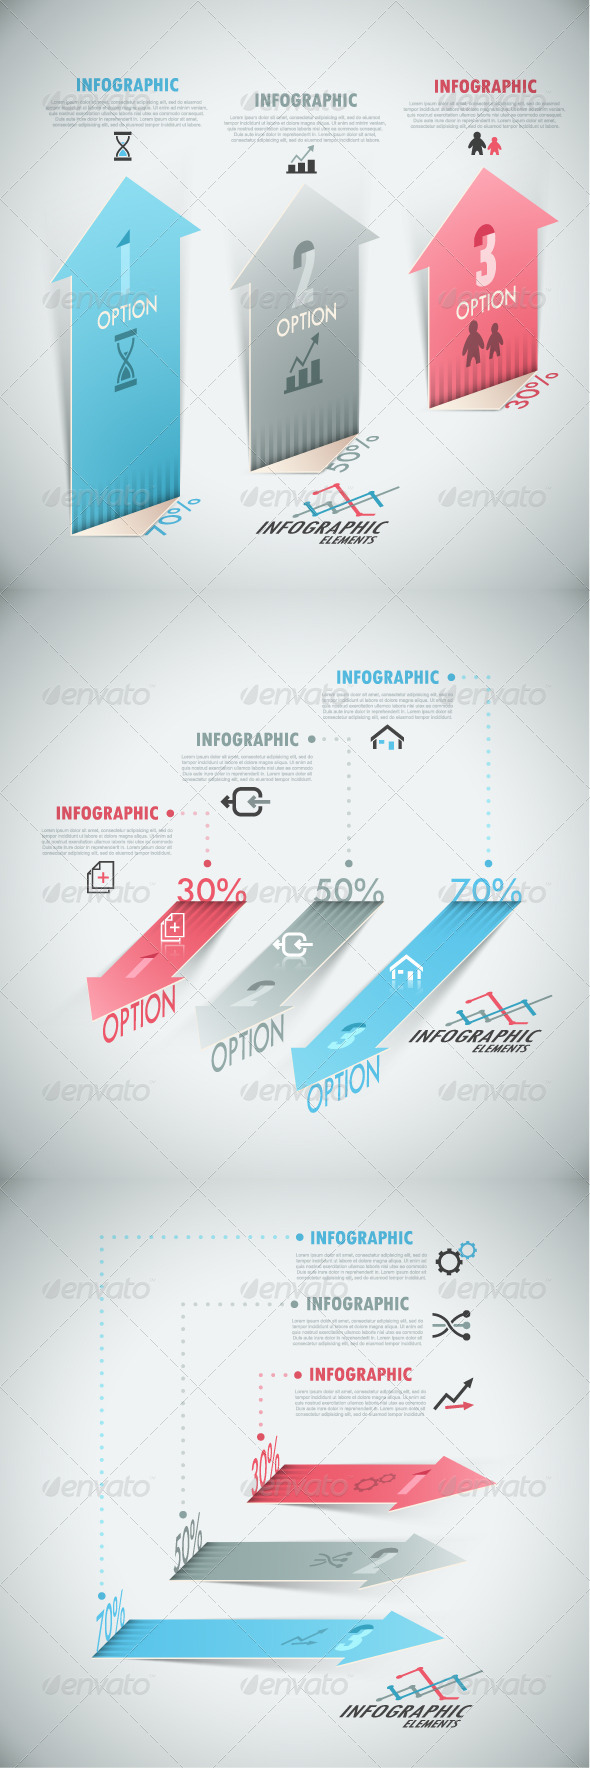 GraphicRiver Modern Infographic Options Banner 3 Versions 7750649